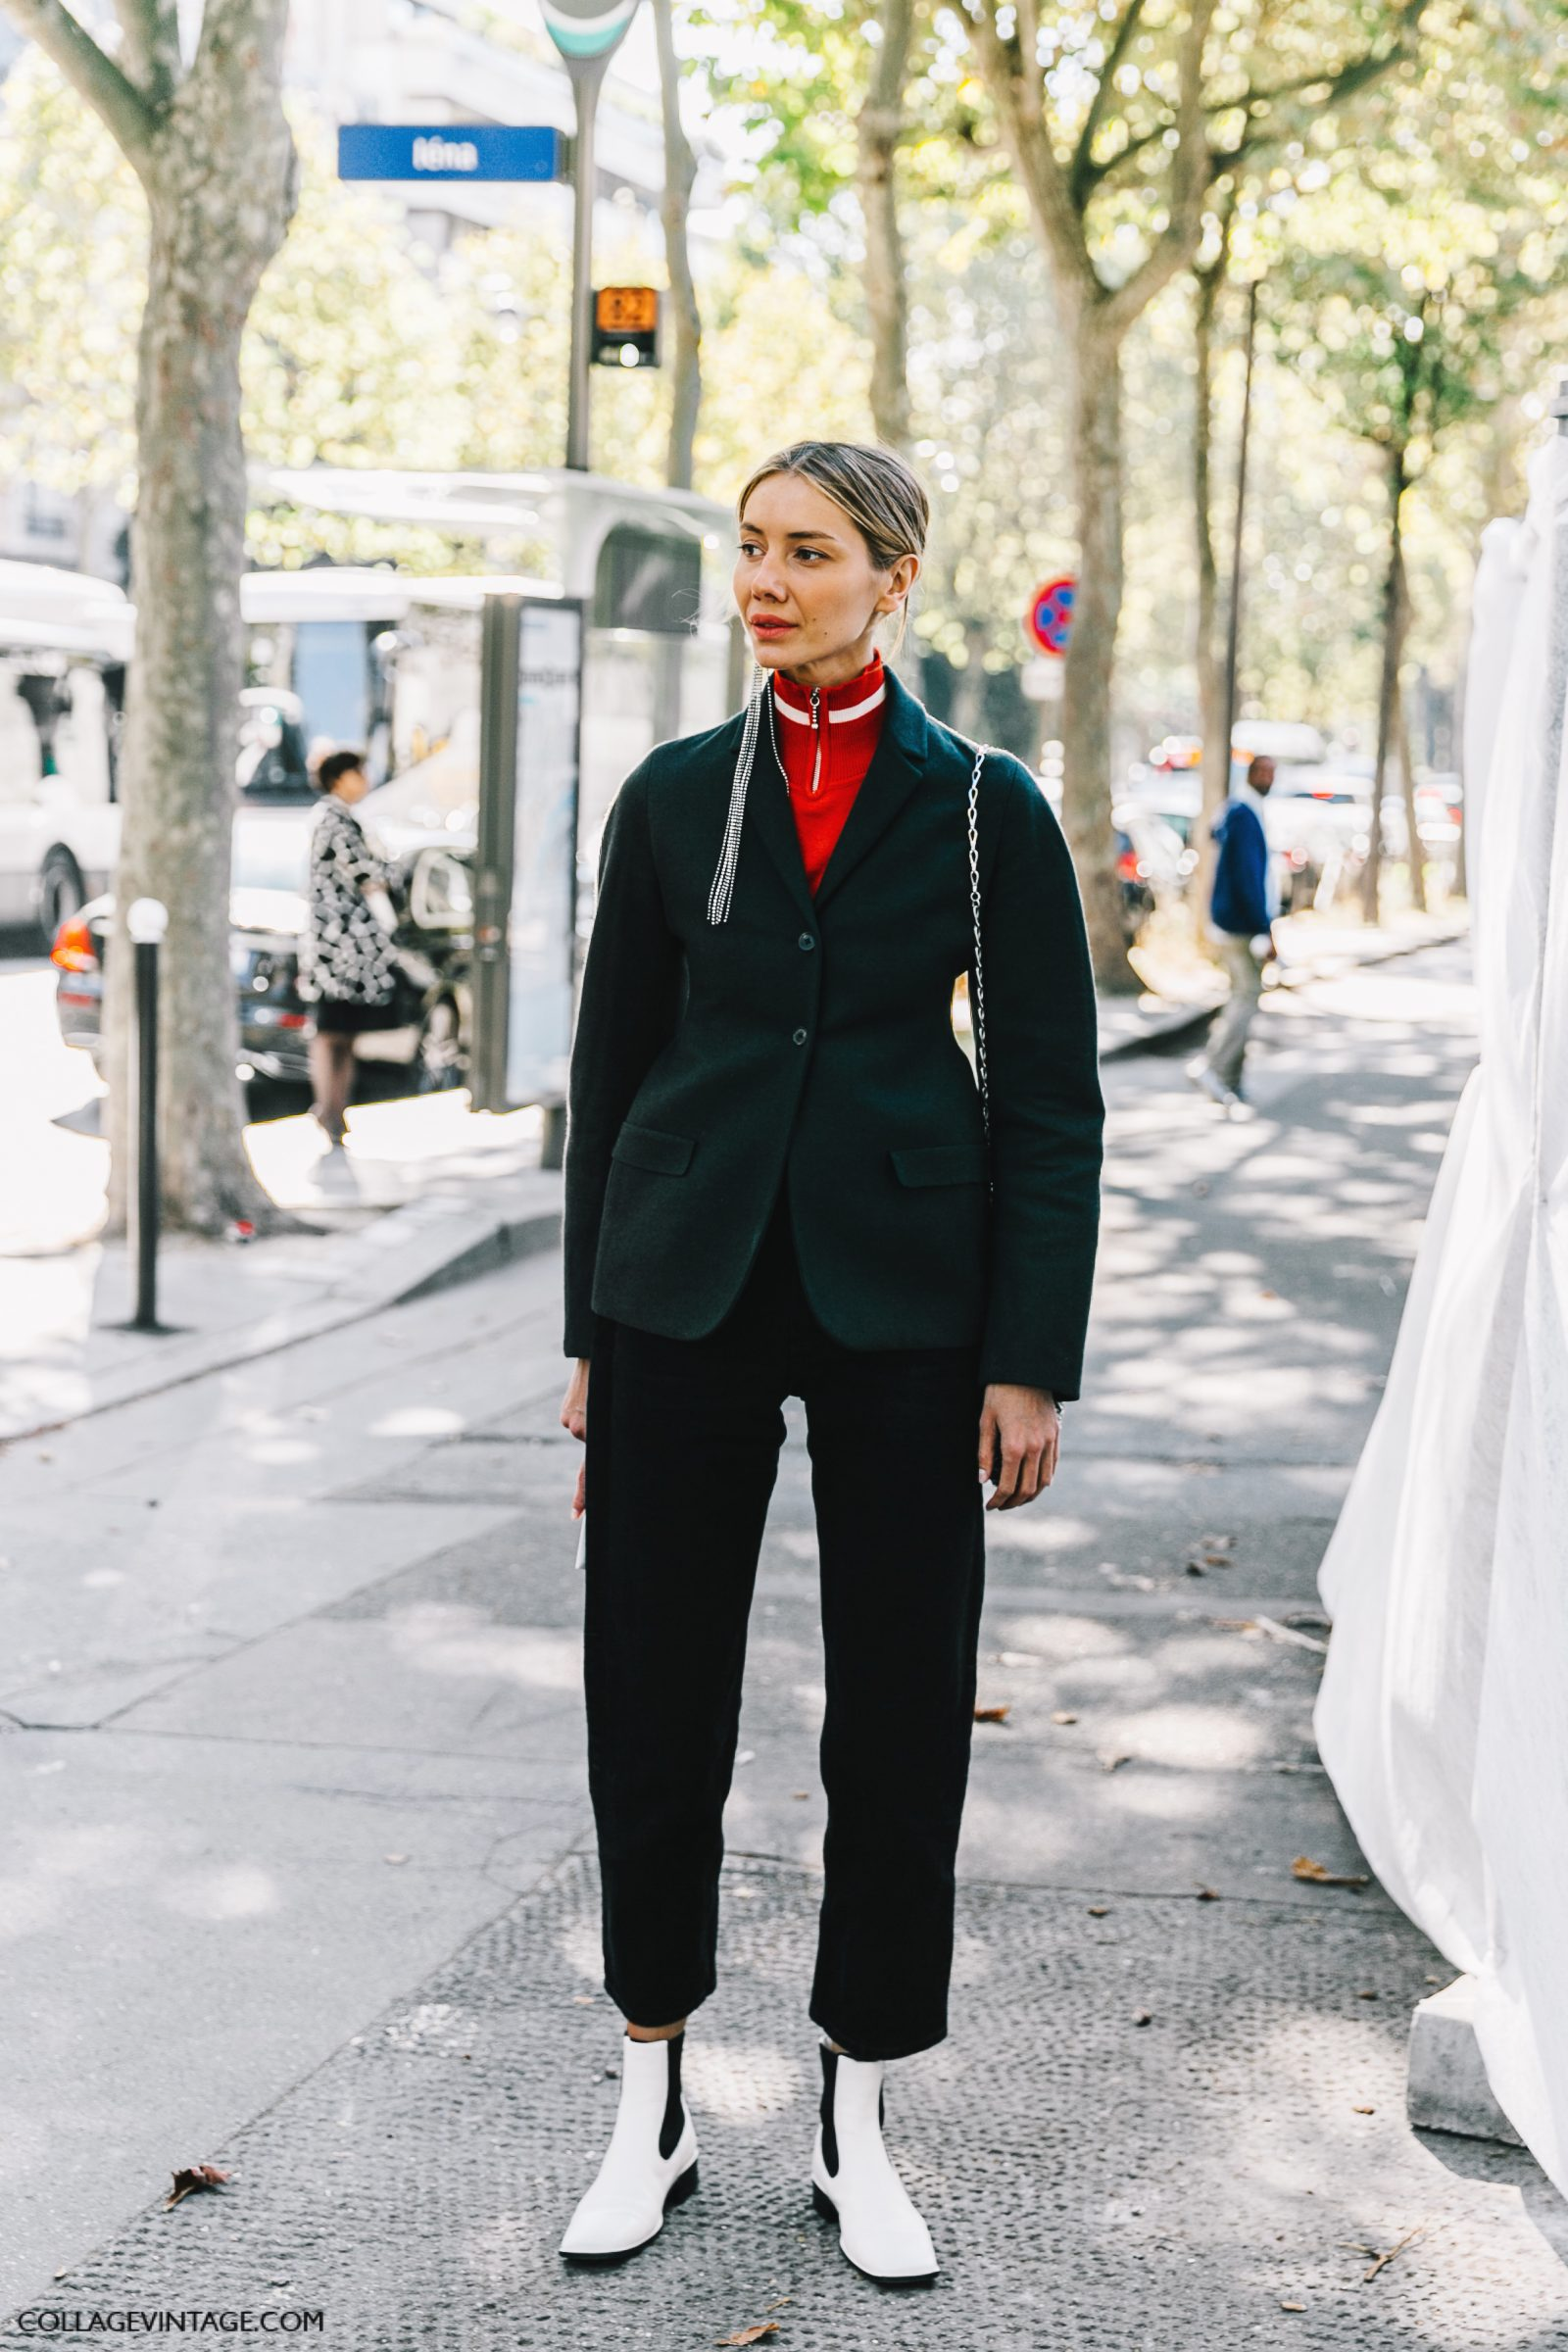 pfw-paris_fashion_week_ss17-street_style-outfit-collage_vintage-louis_vuitton-miu_miu-71